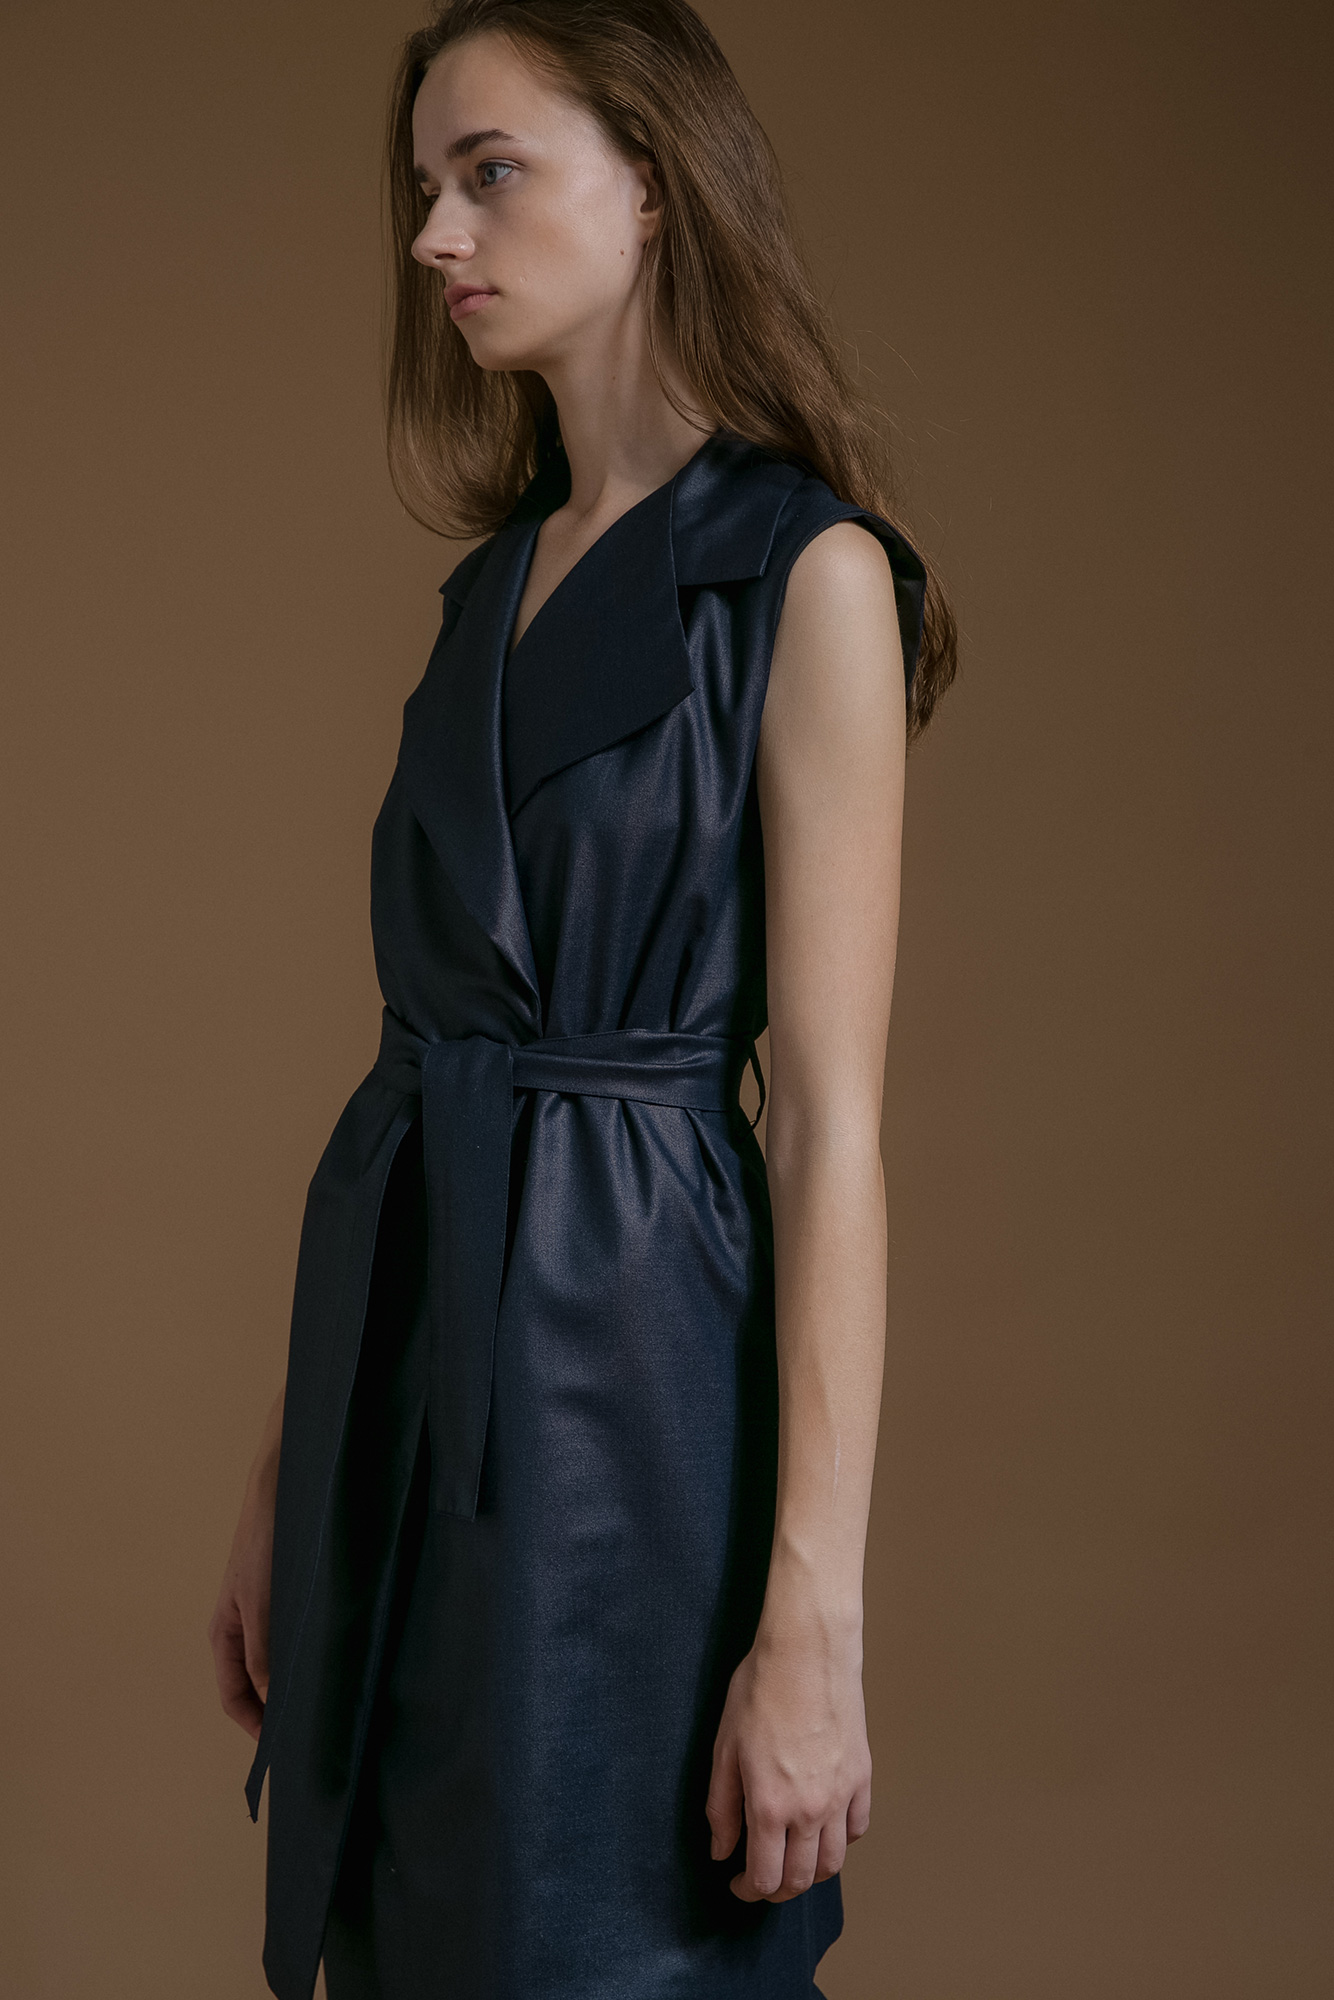 wrns_ss17_02_act-dress_07